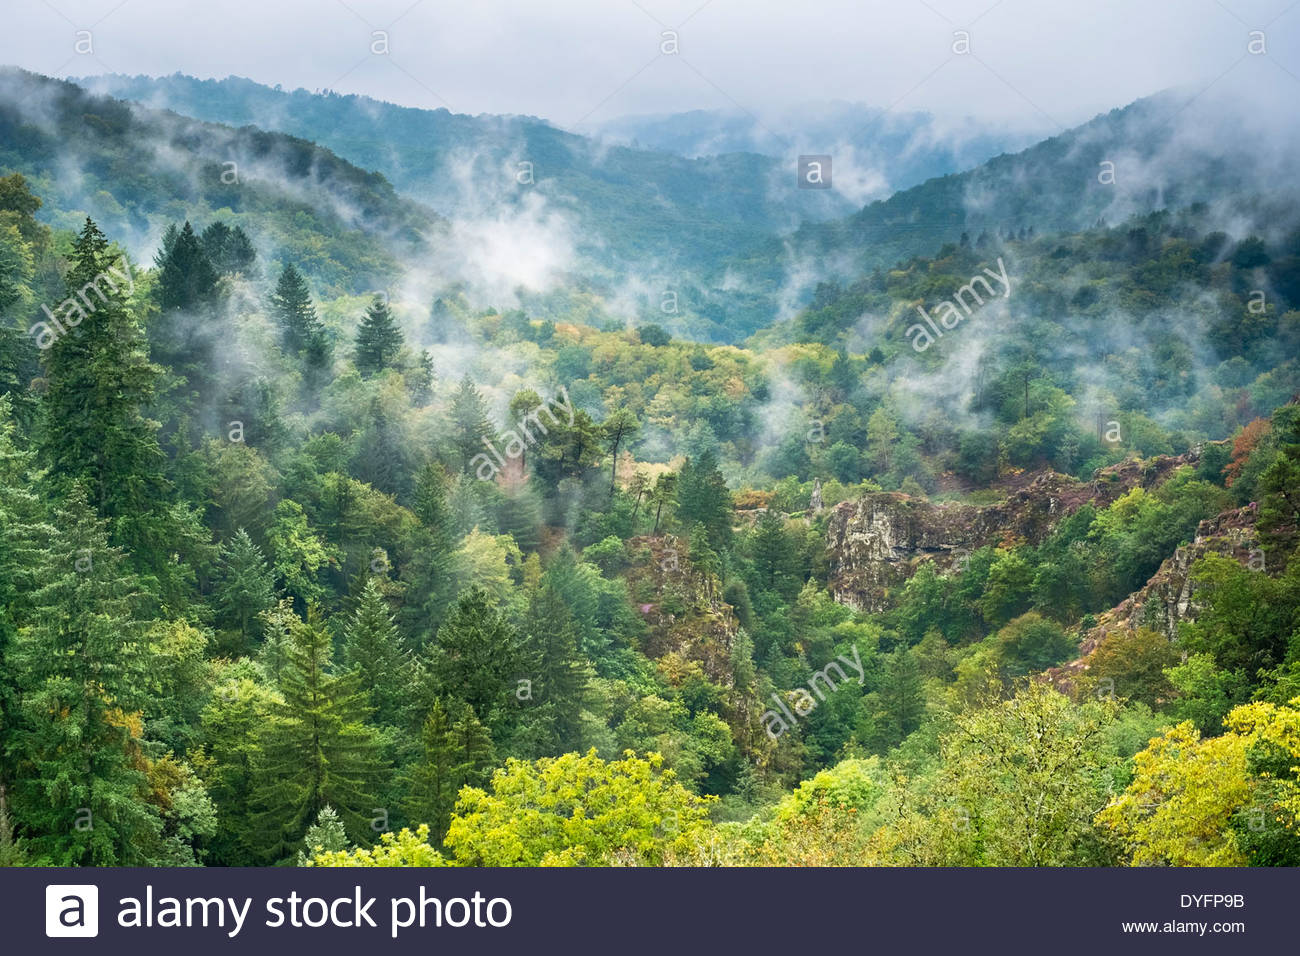 Fog over the Gorge de la Montane, Gimel-les-Cascades, Corrèze département, Limousin, France - Stock Image